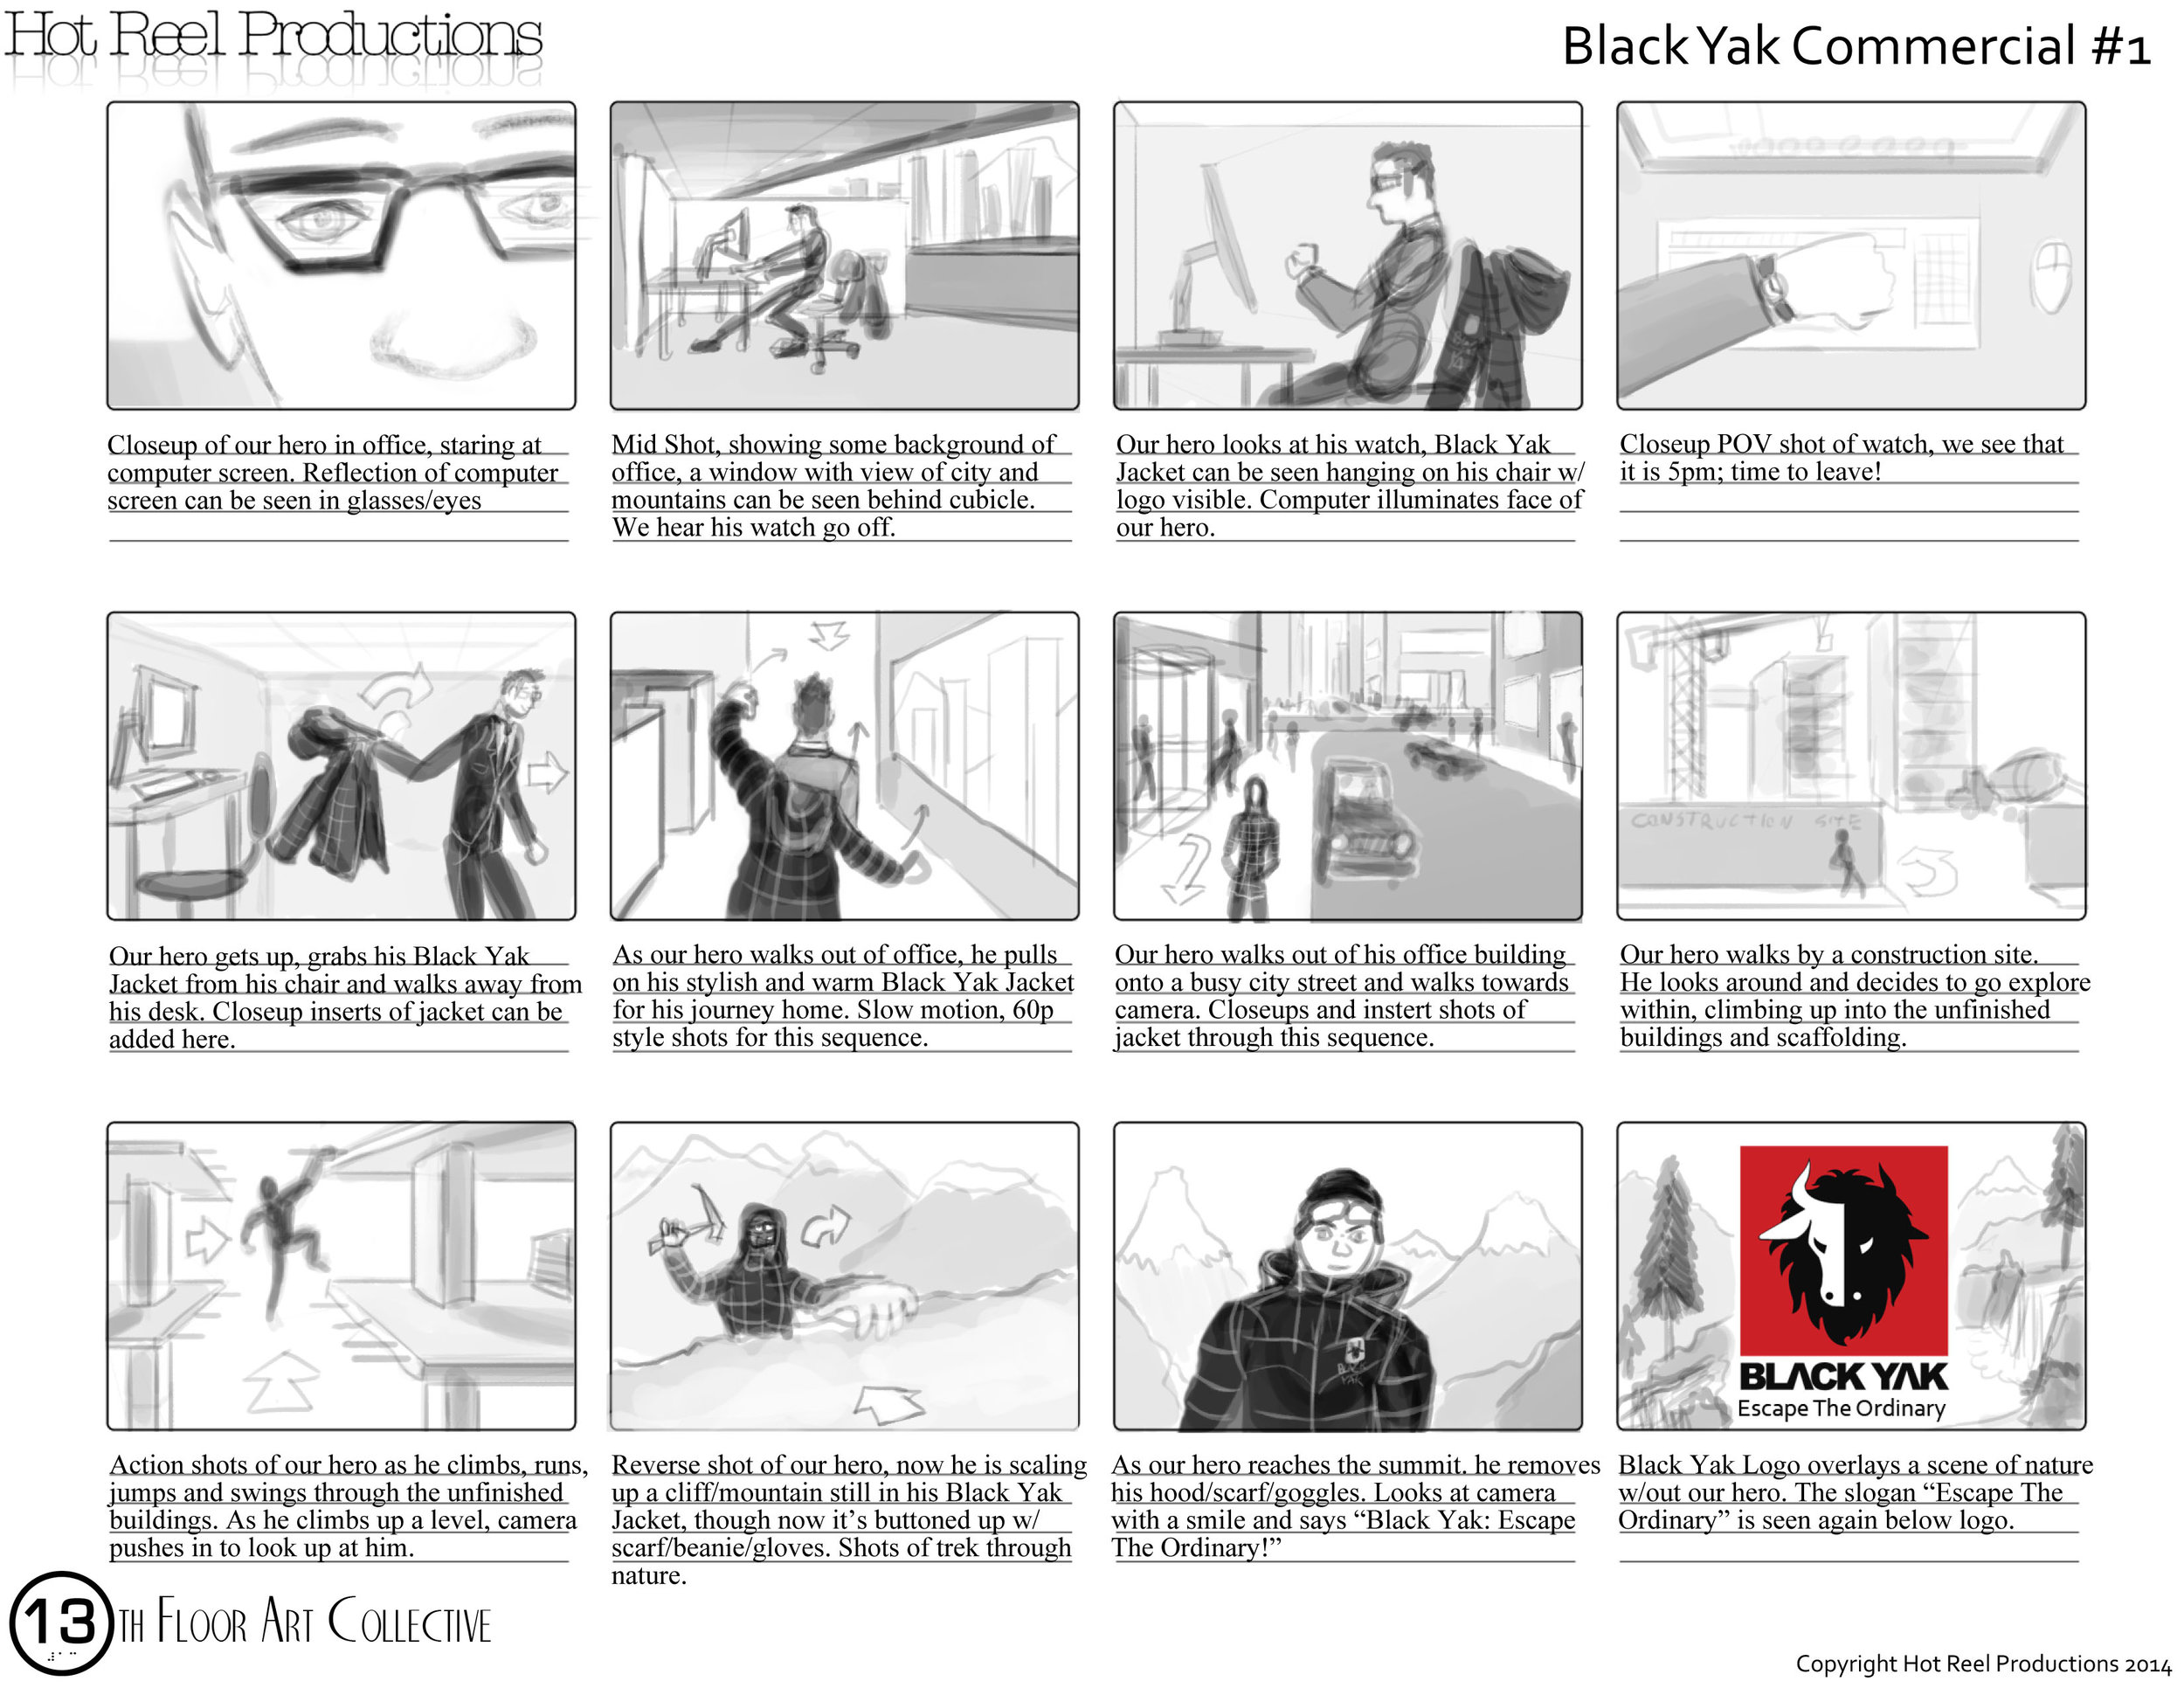 HRP_BY-Commercial_Storyboard1.jpg